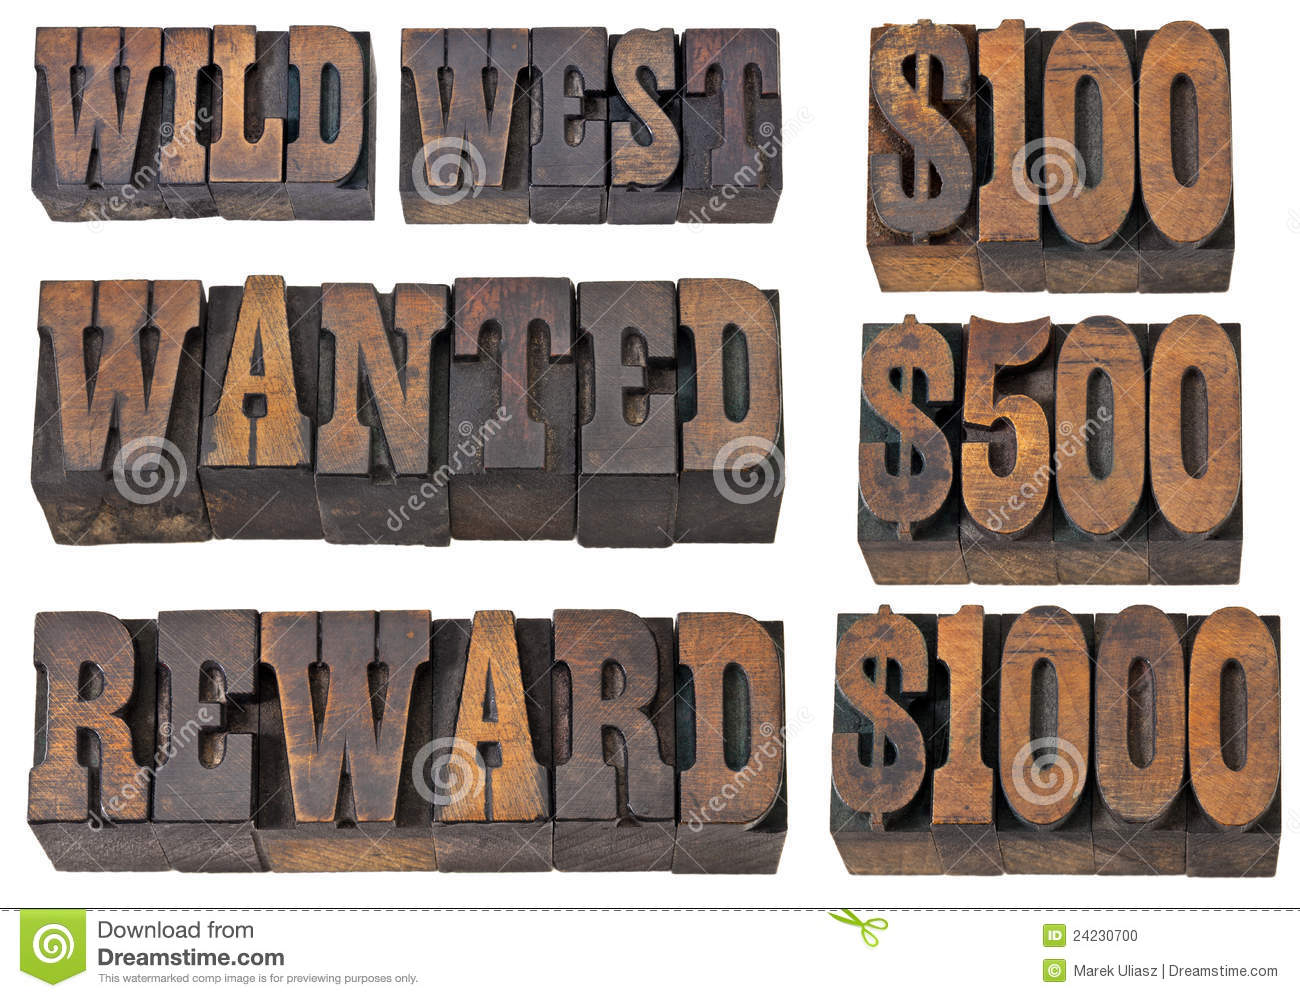 Reward Wanted Old Western Fonts